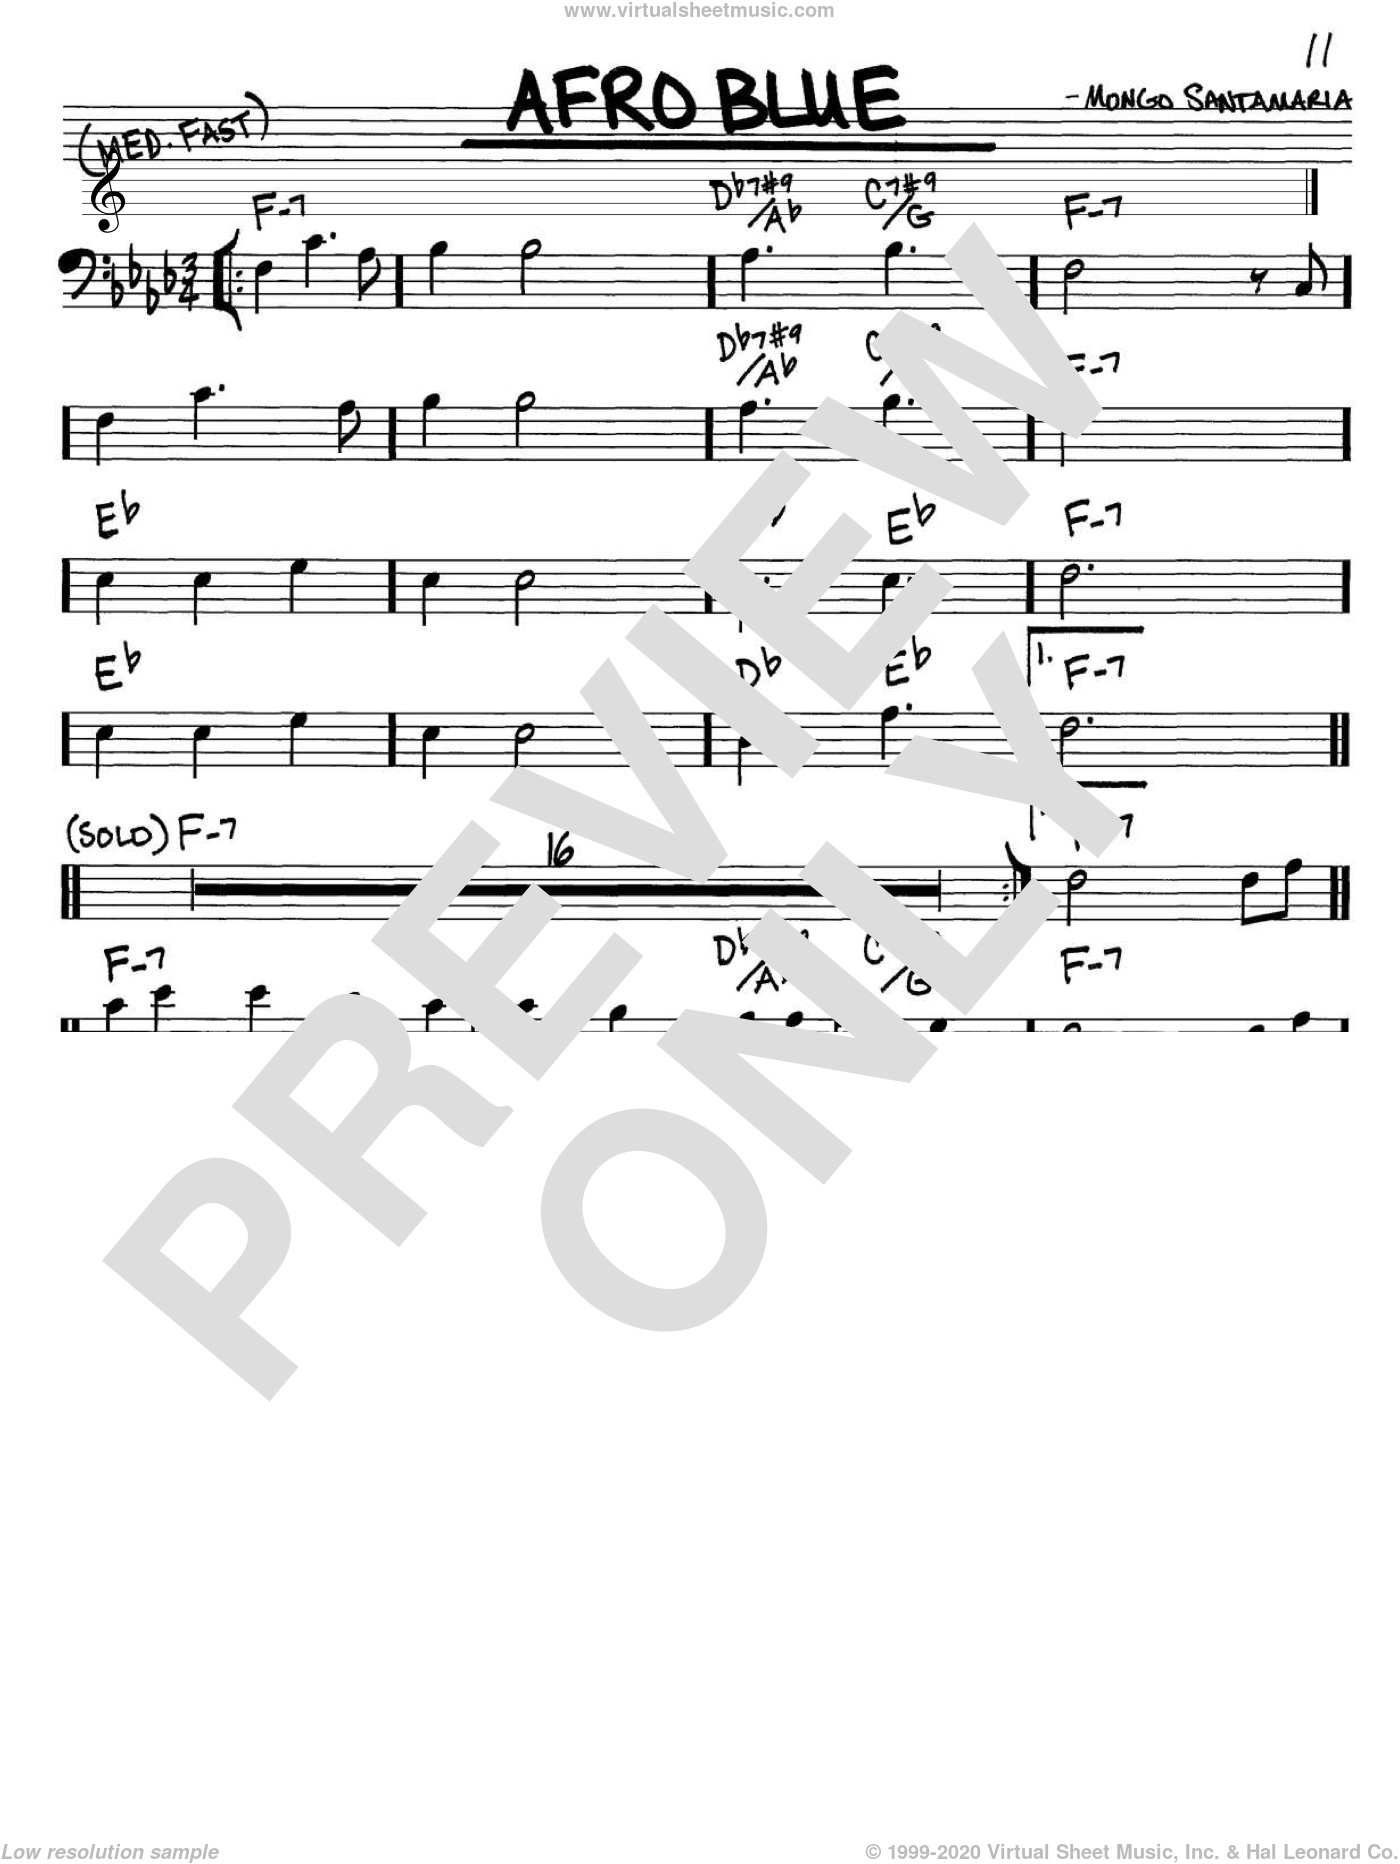 Afro Blue sheet music for voice and other instruments (Bass Clef ) by Mongo Santamaria and John Coltrane. Score Image Preview.